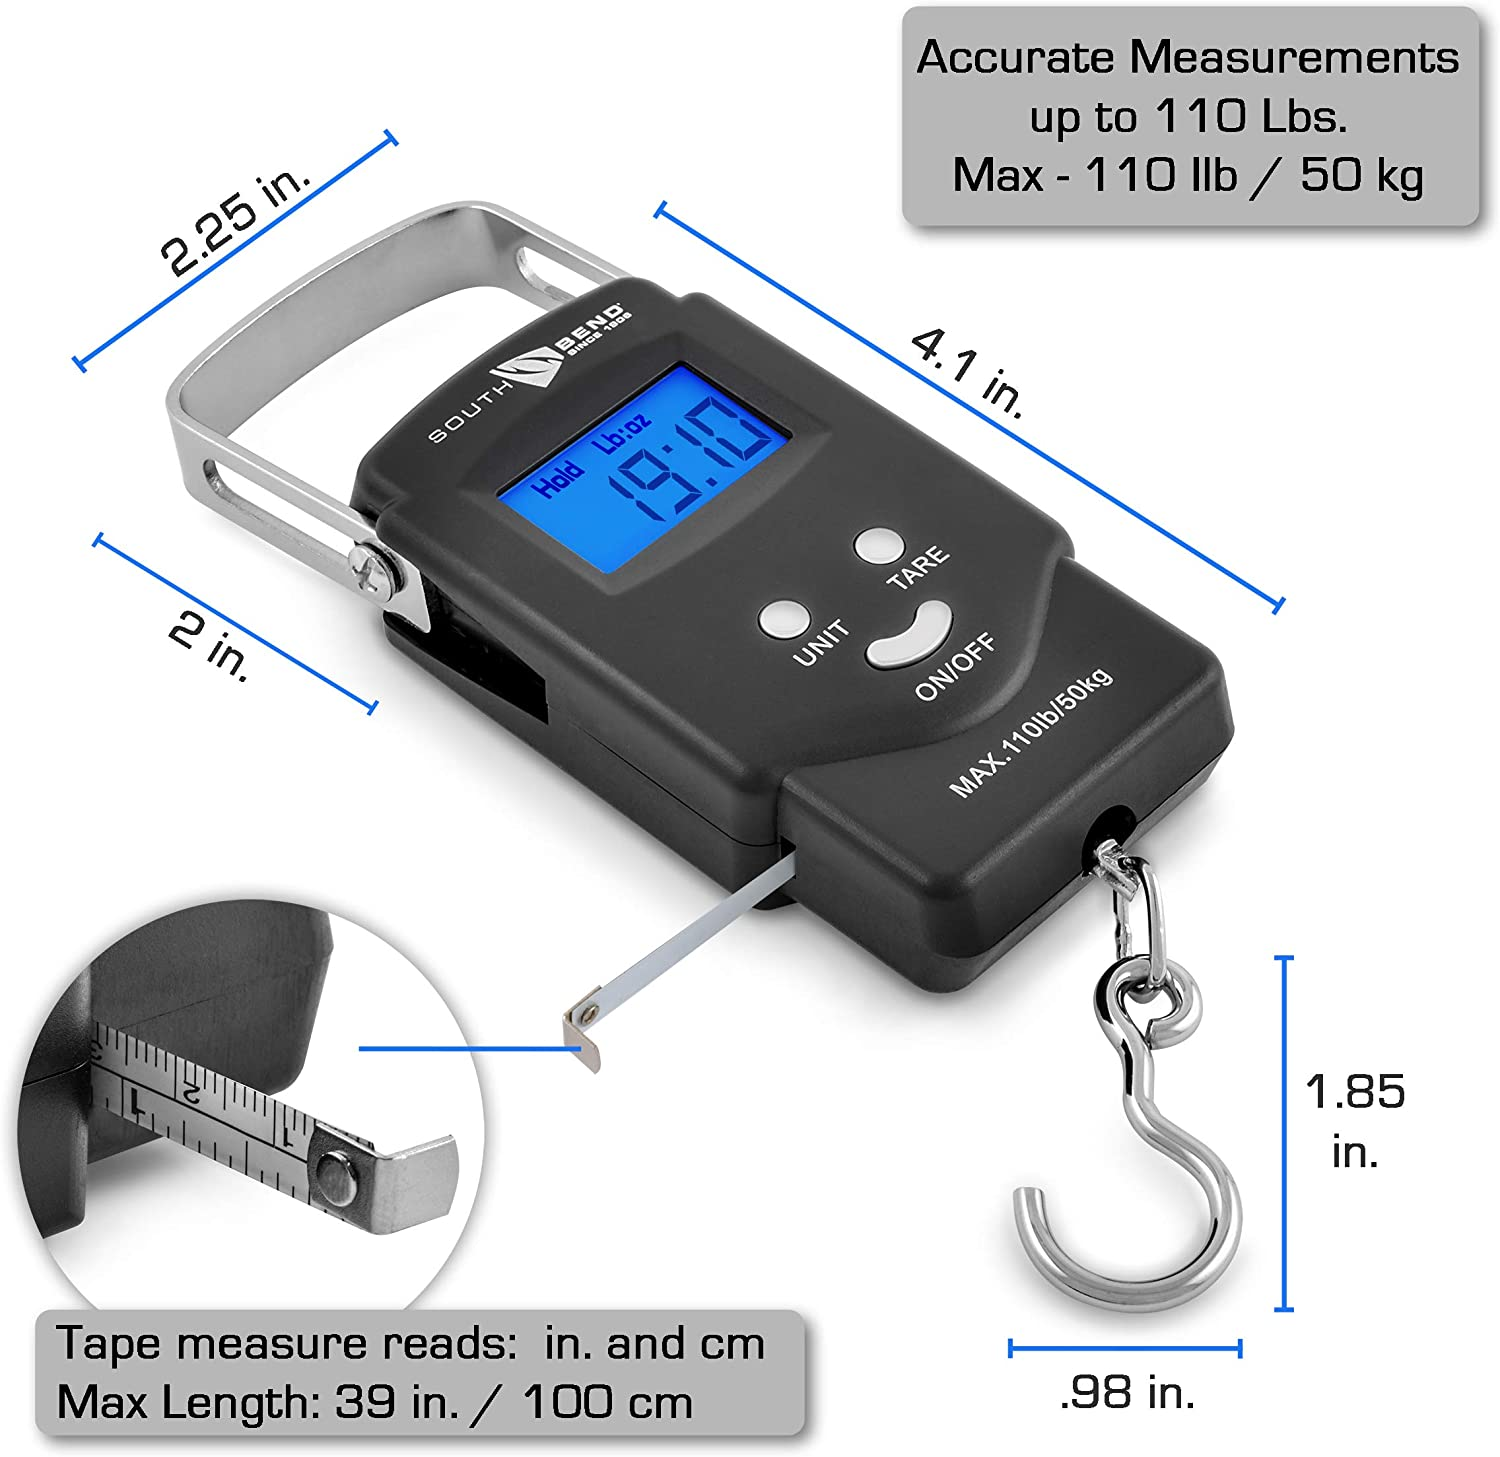 Business Industrial Other Thermometers 50 Kg 110 Lb Electronic Digital Portable Luggage Hanging Weight Scale Nd Studio In Fine Fr A quick online weight calculator to convert pounds(lb) to kilograms(kg). studio in fine